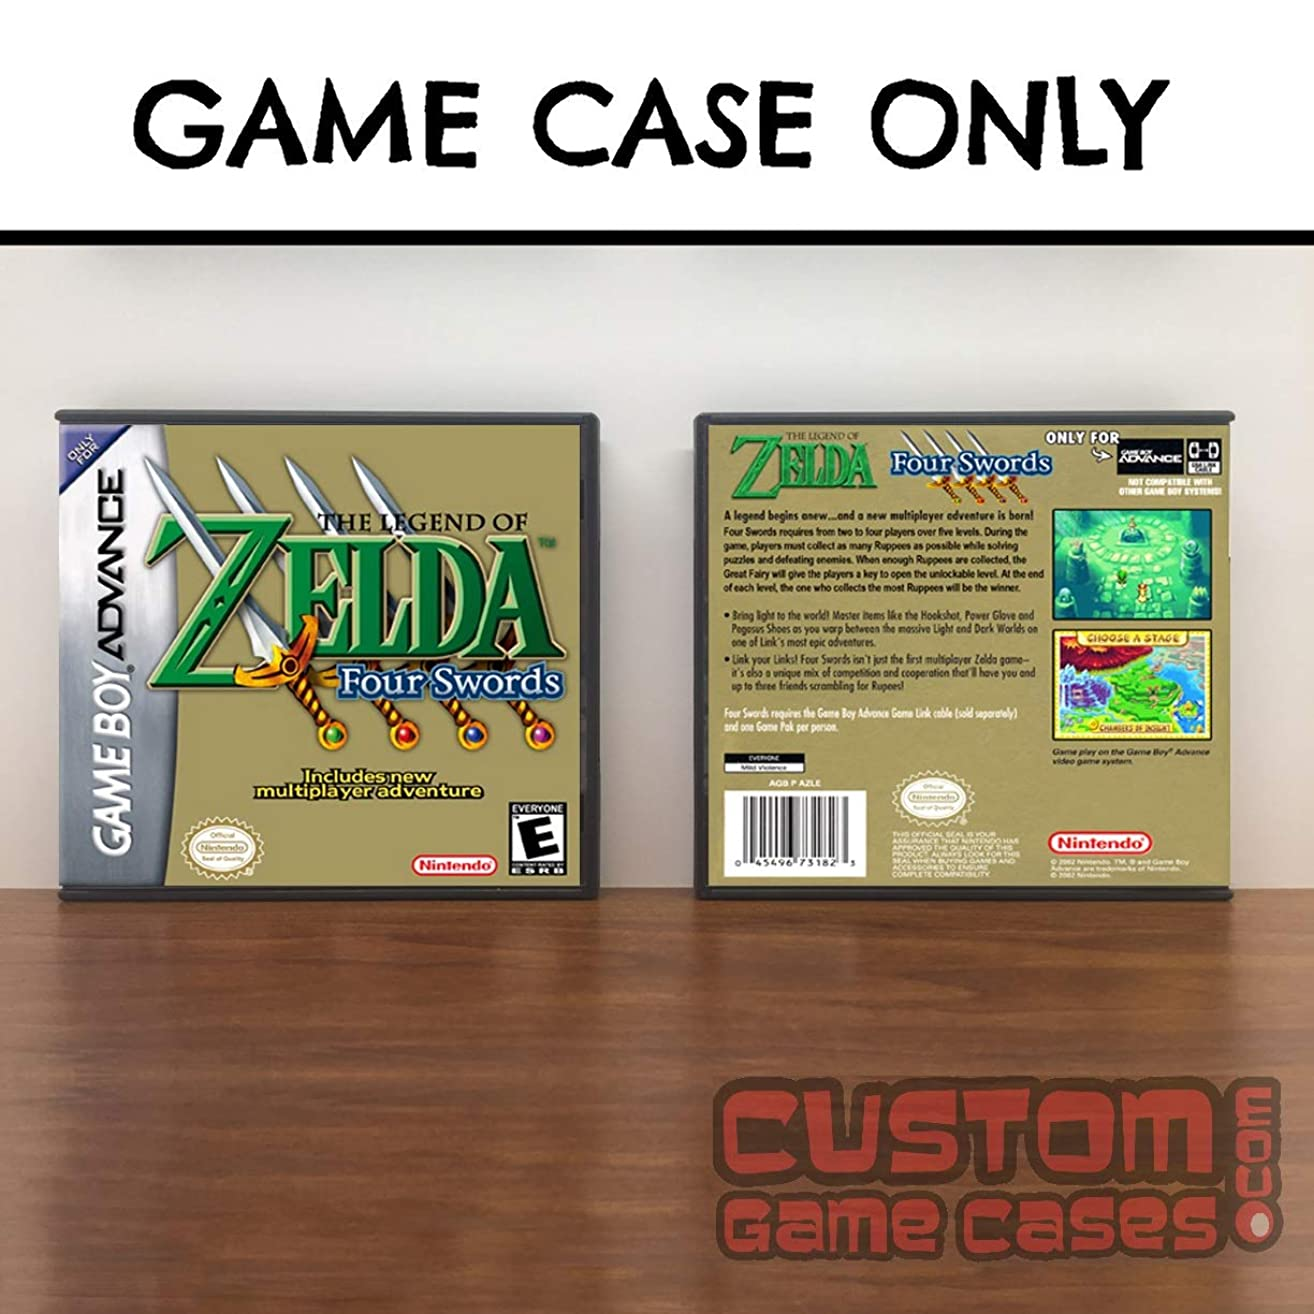 Gameboy Advance Legend of Zelda ,The: A Link to the Past & Four Swords (Green) - Case